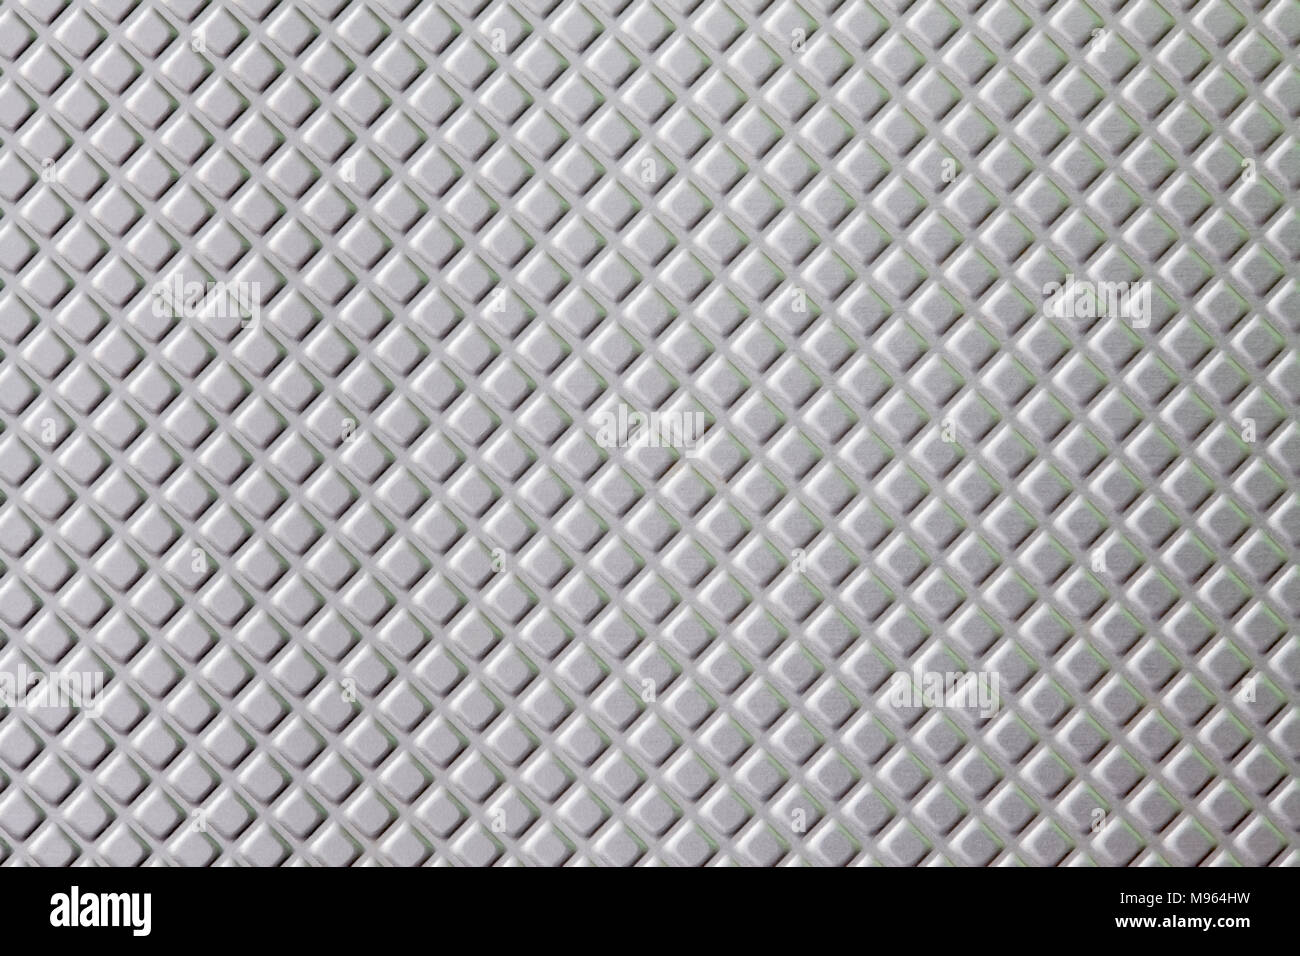 Metallic silver repeat grid pattern or background - Stock Image